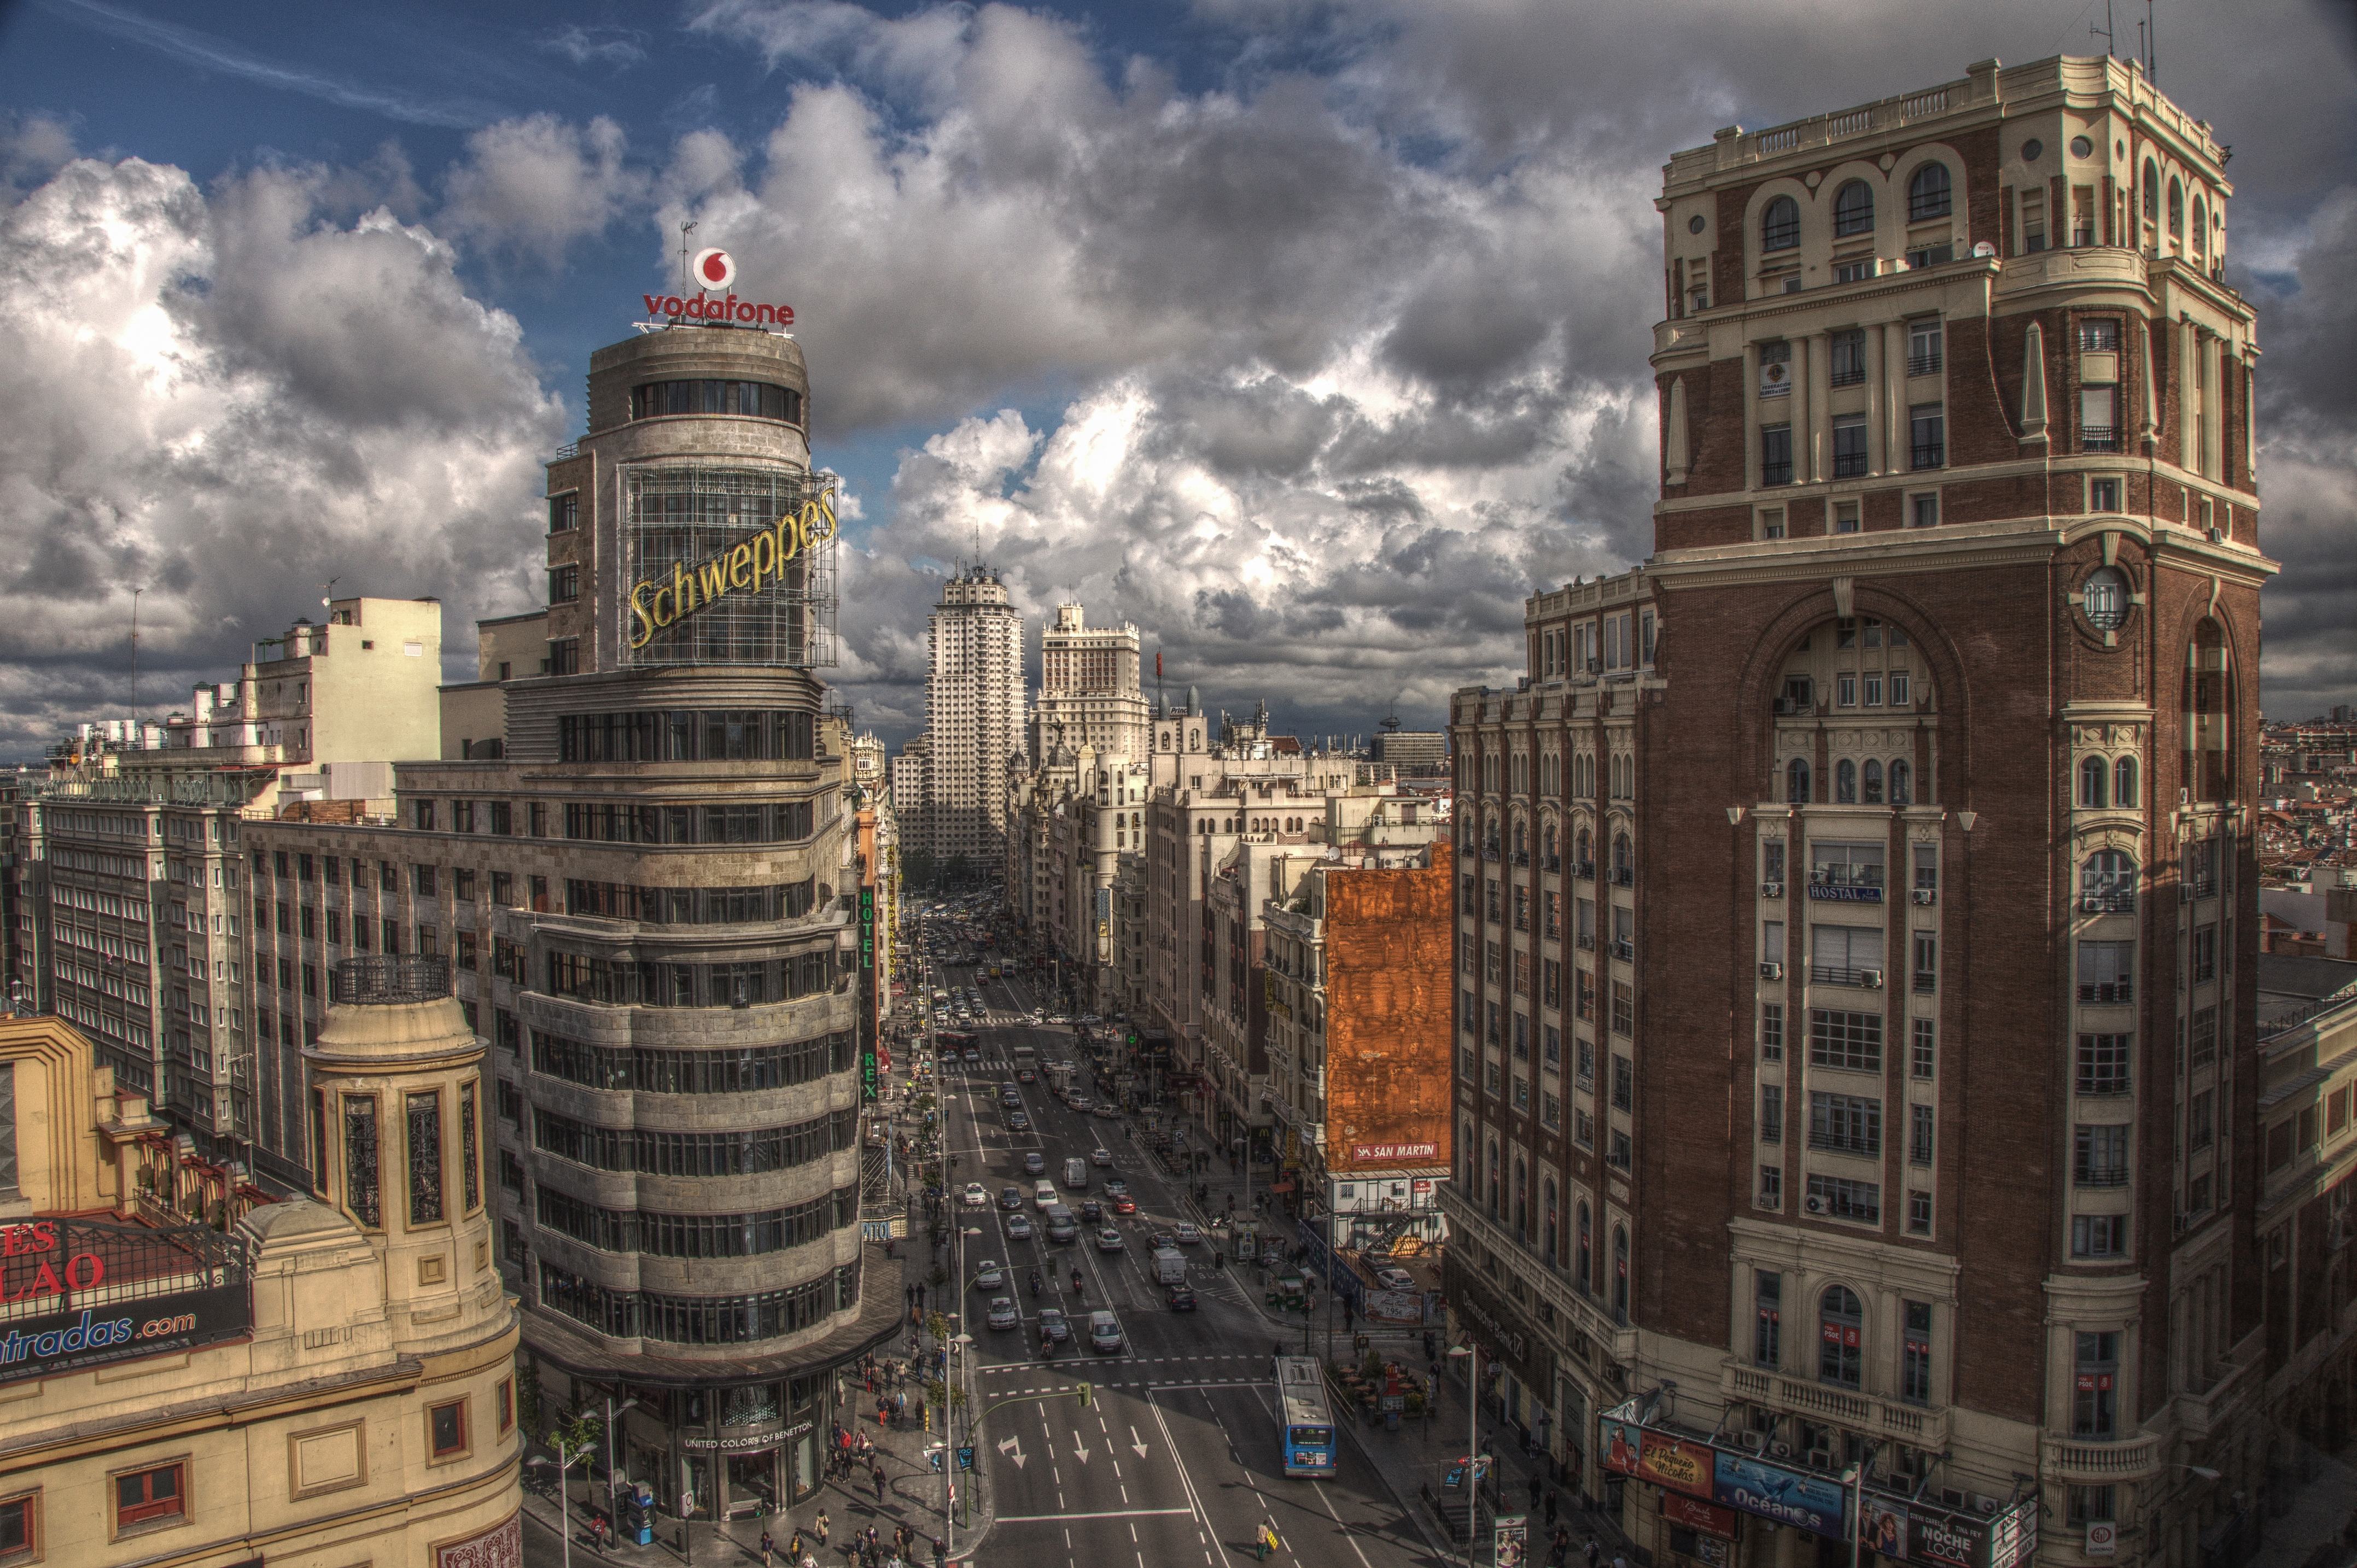 Madrid Wikipedia